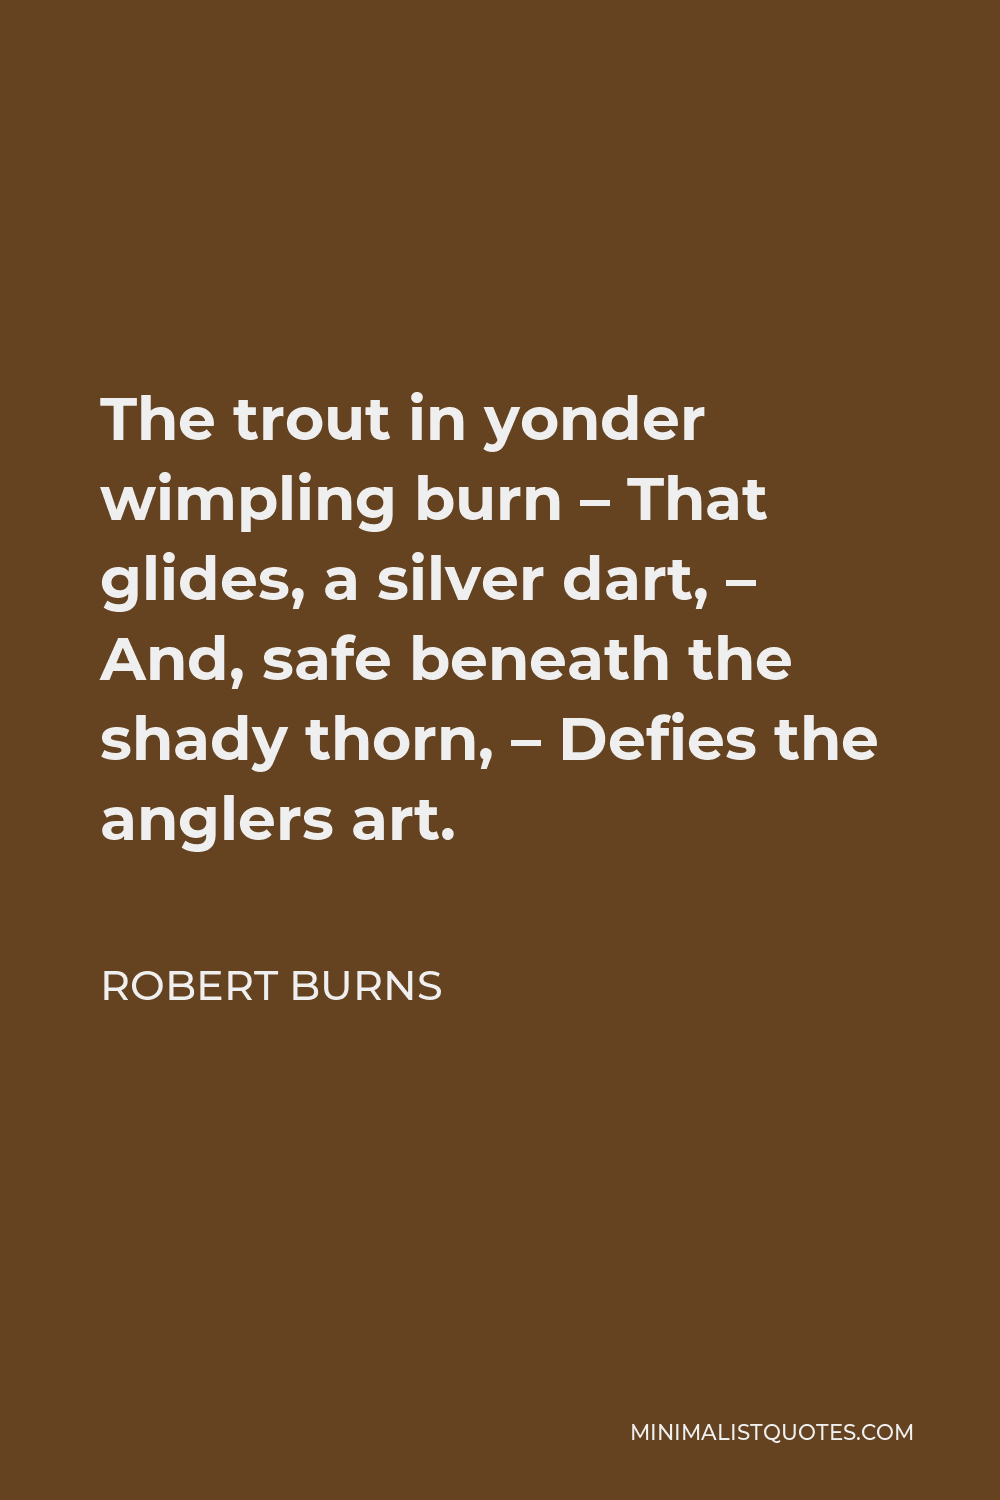 Robert Burns Quote - The trout in yonder wimpling burn – That glides, a silver dart, – And, safe beneath the shady thorn, – Defies the anglers art.